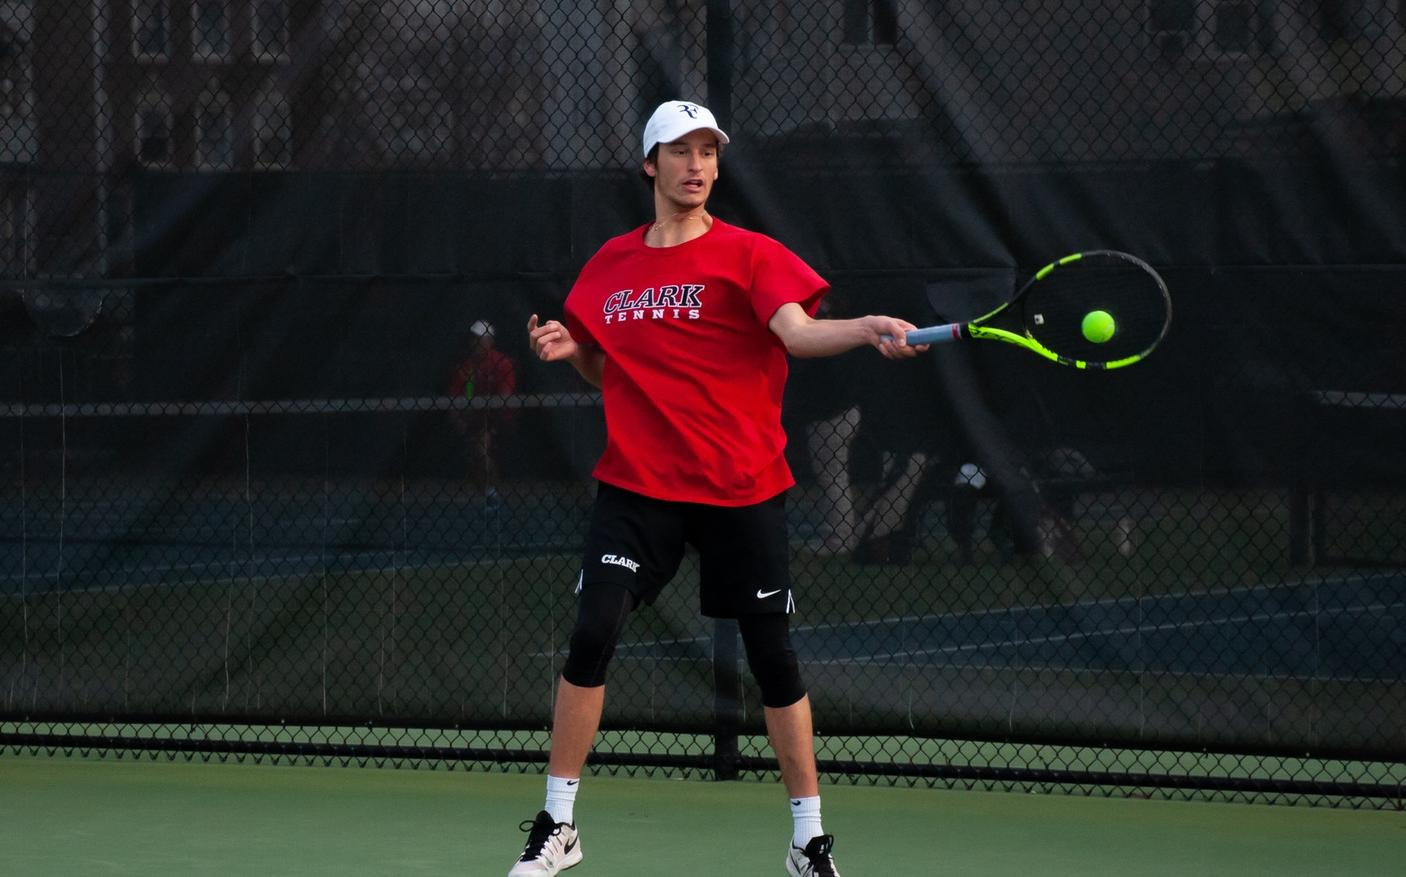 Men's Tennis Drops to Coast Guard in NEWMAC Match